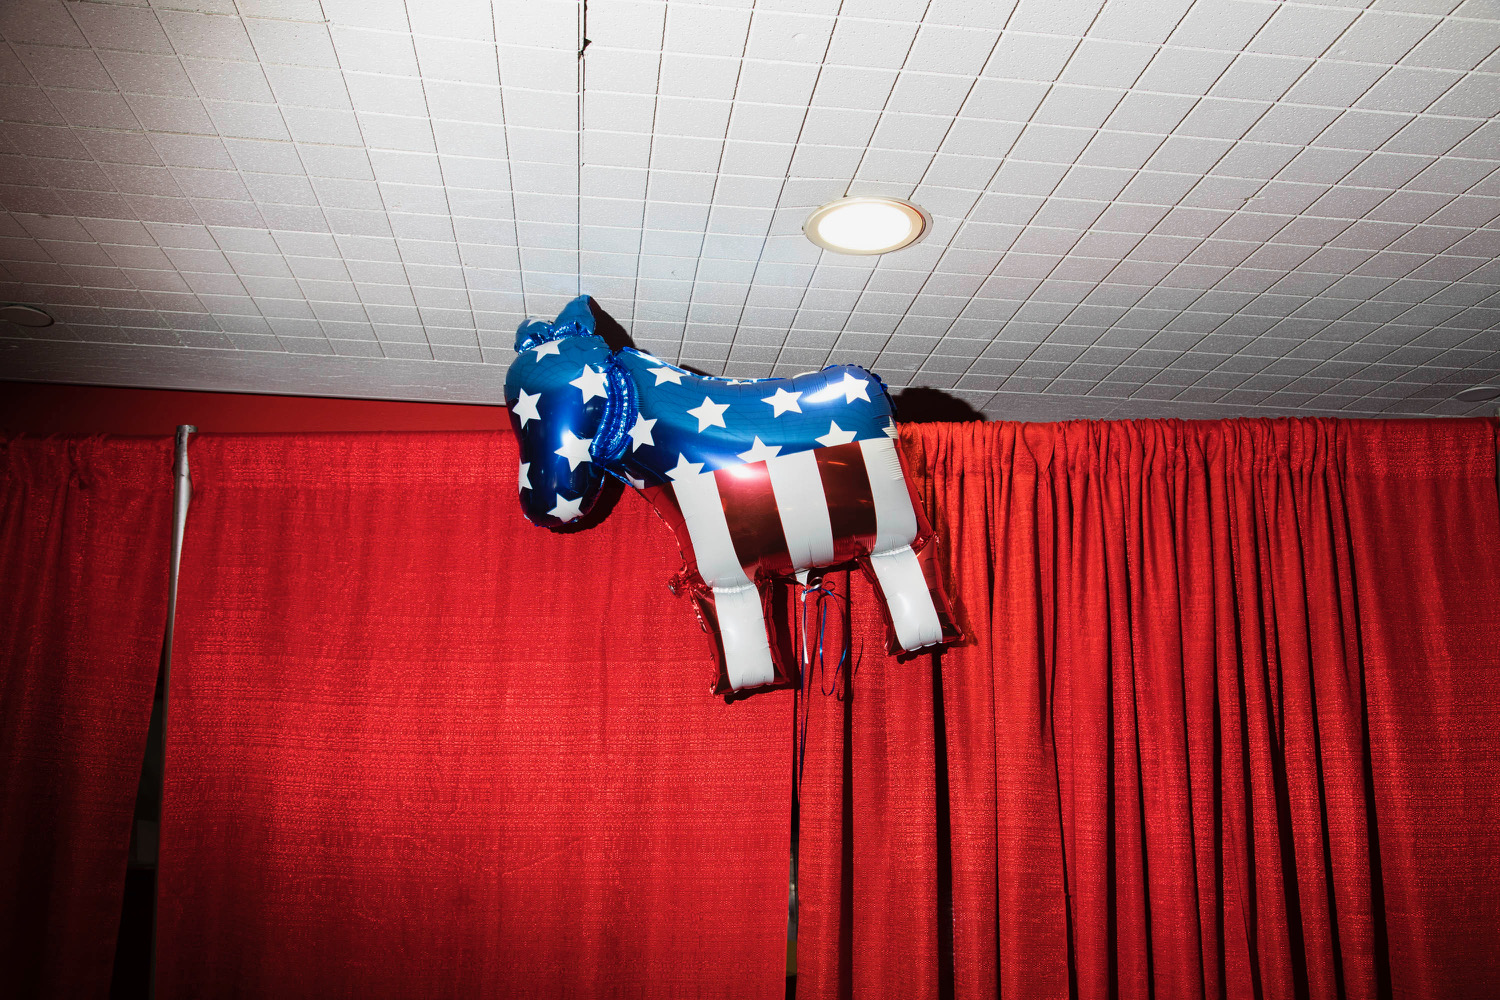 A balloon shaped like a donkey is seen at an election night party for Hillary Clinton at the Javits Center, on Nov. 8, 2016, in New York.